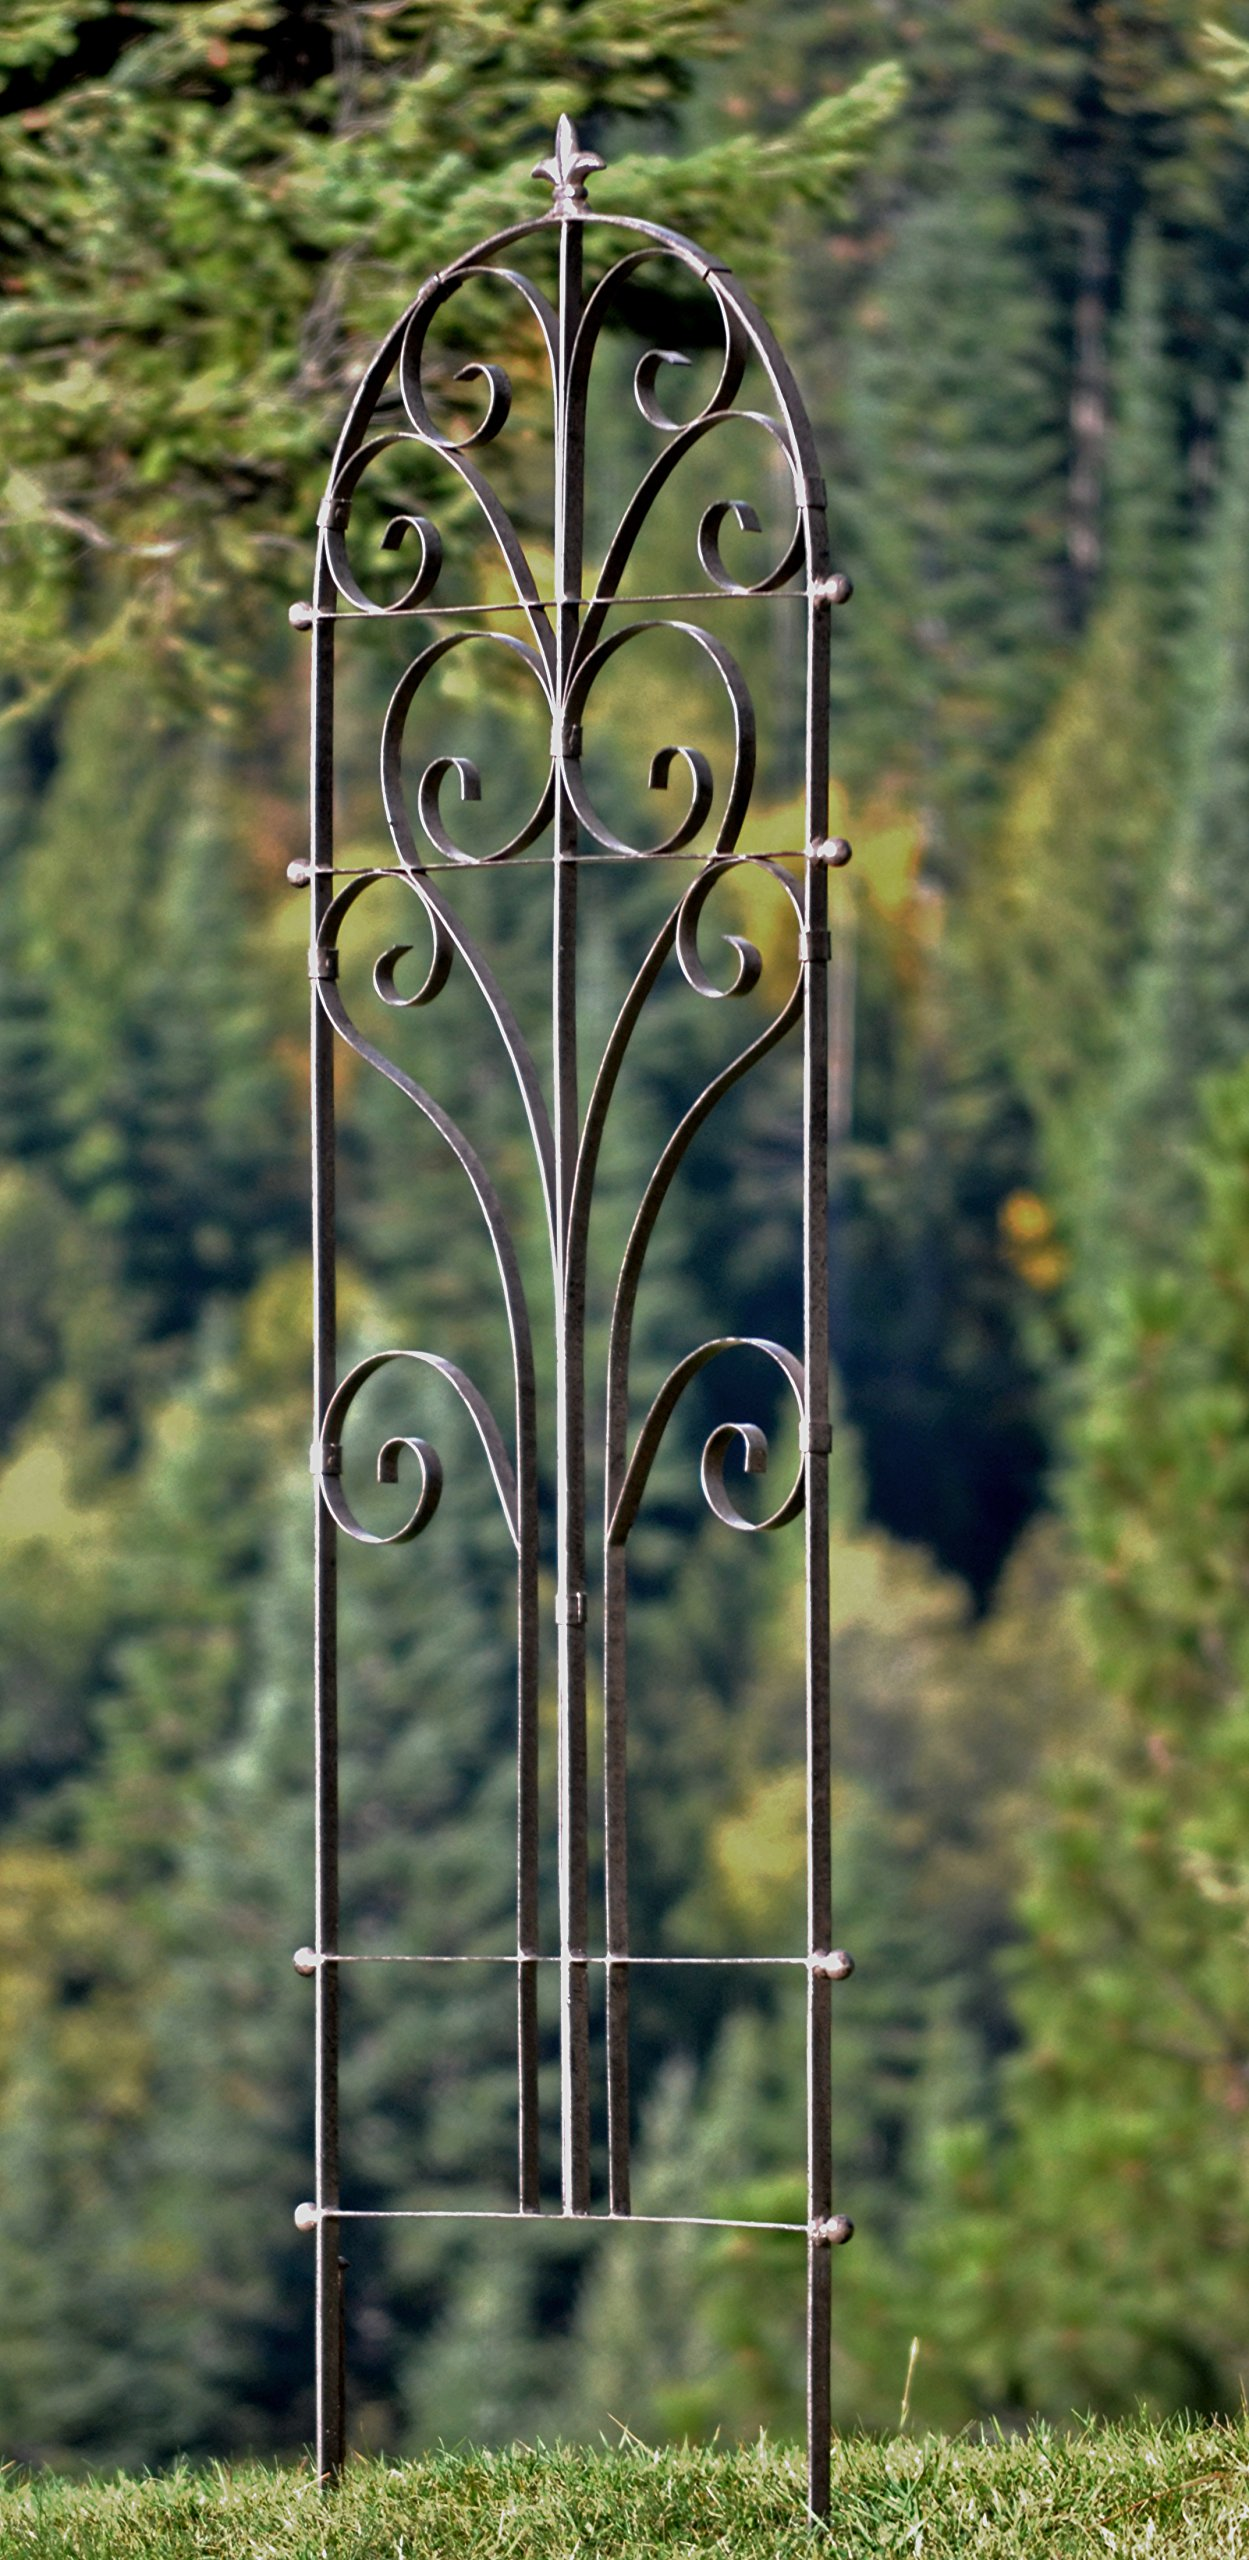 H Potter Italian Iron Garden Trellis - Durable, Elegant Metal Trellis Lawn Decor with Powder Coat Finish - Hand Cut, Heavy Scroll Iron, Easy to Stake, Some Assembly, All Weather Yard Art (Extra Large)